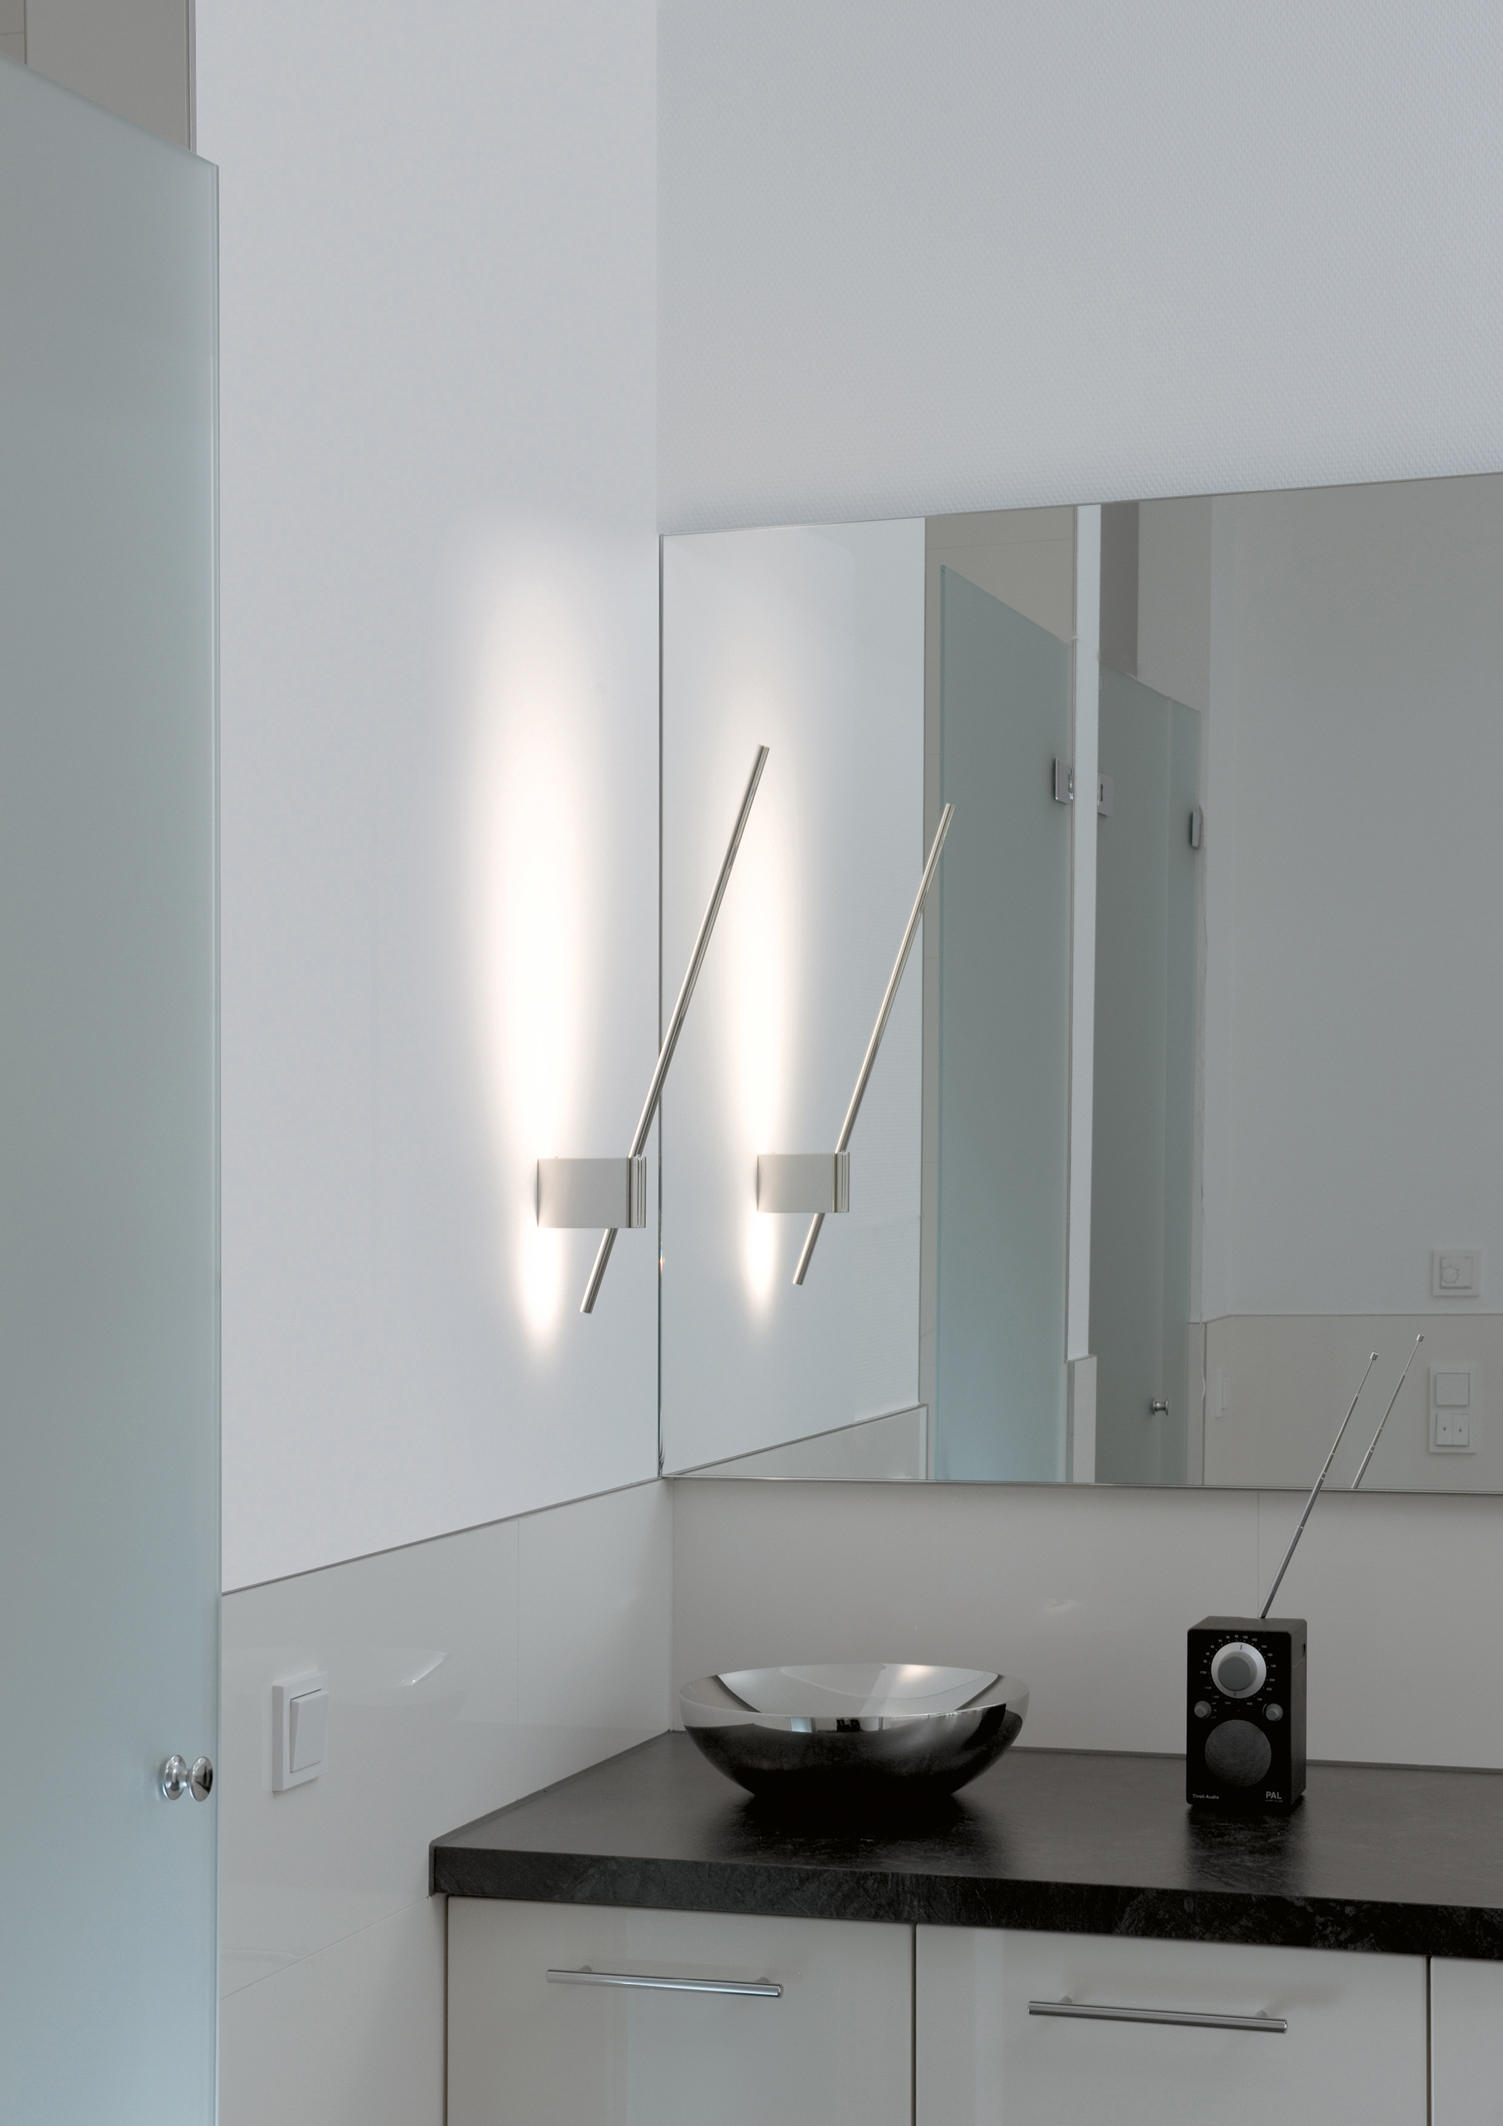 AX LED - Free-standing lights from STENG LICHT | Architonic